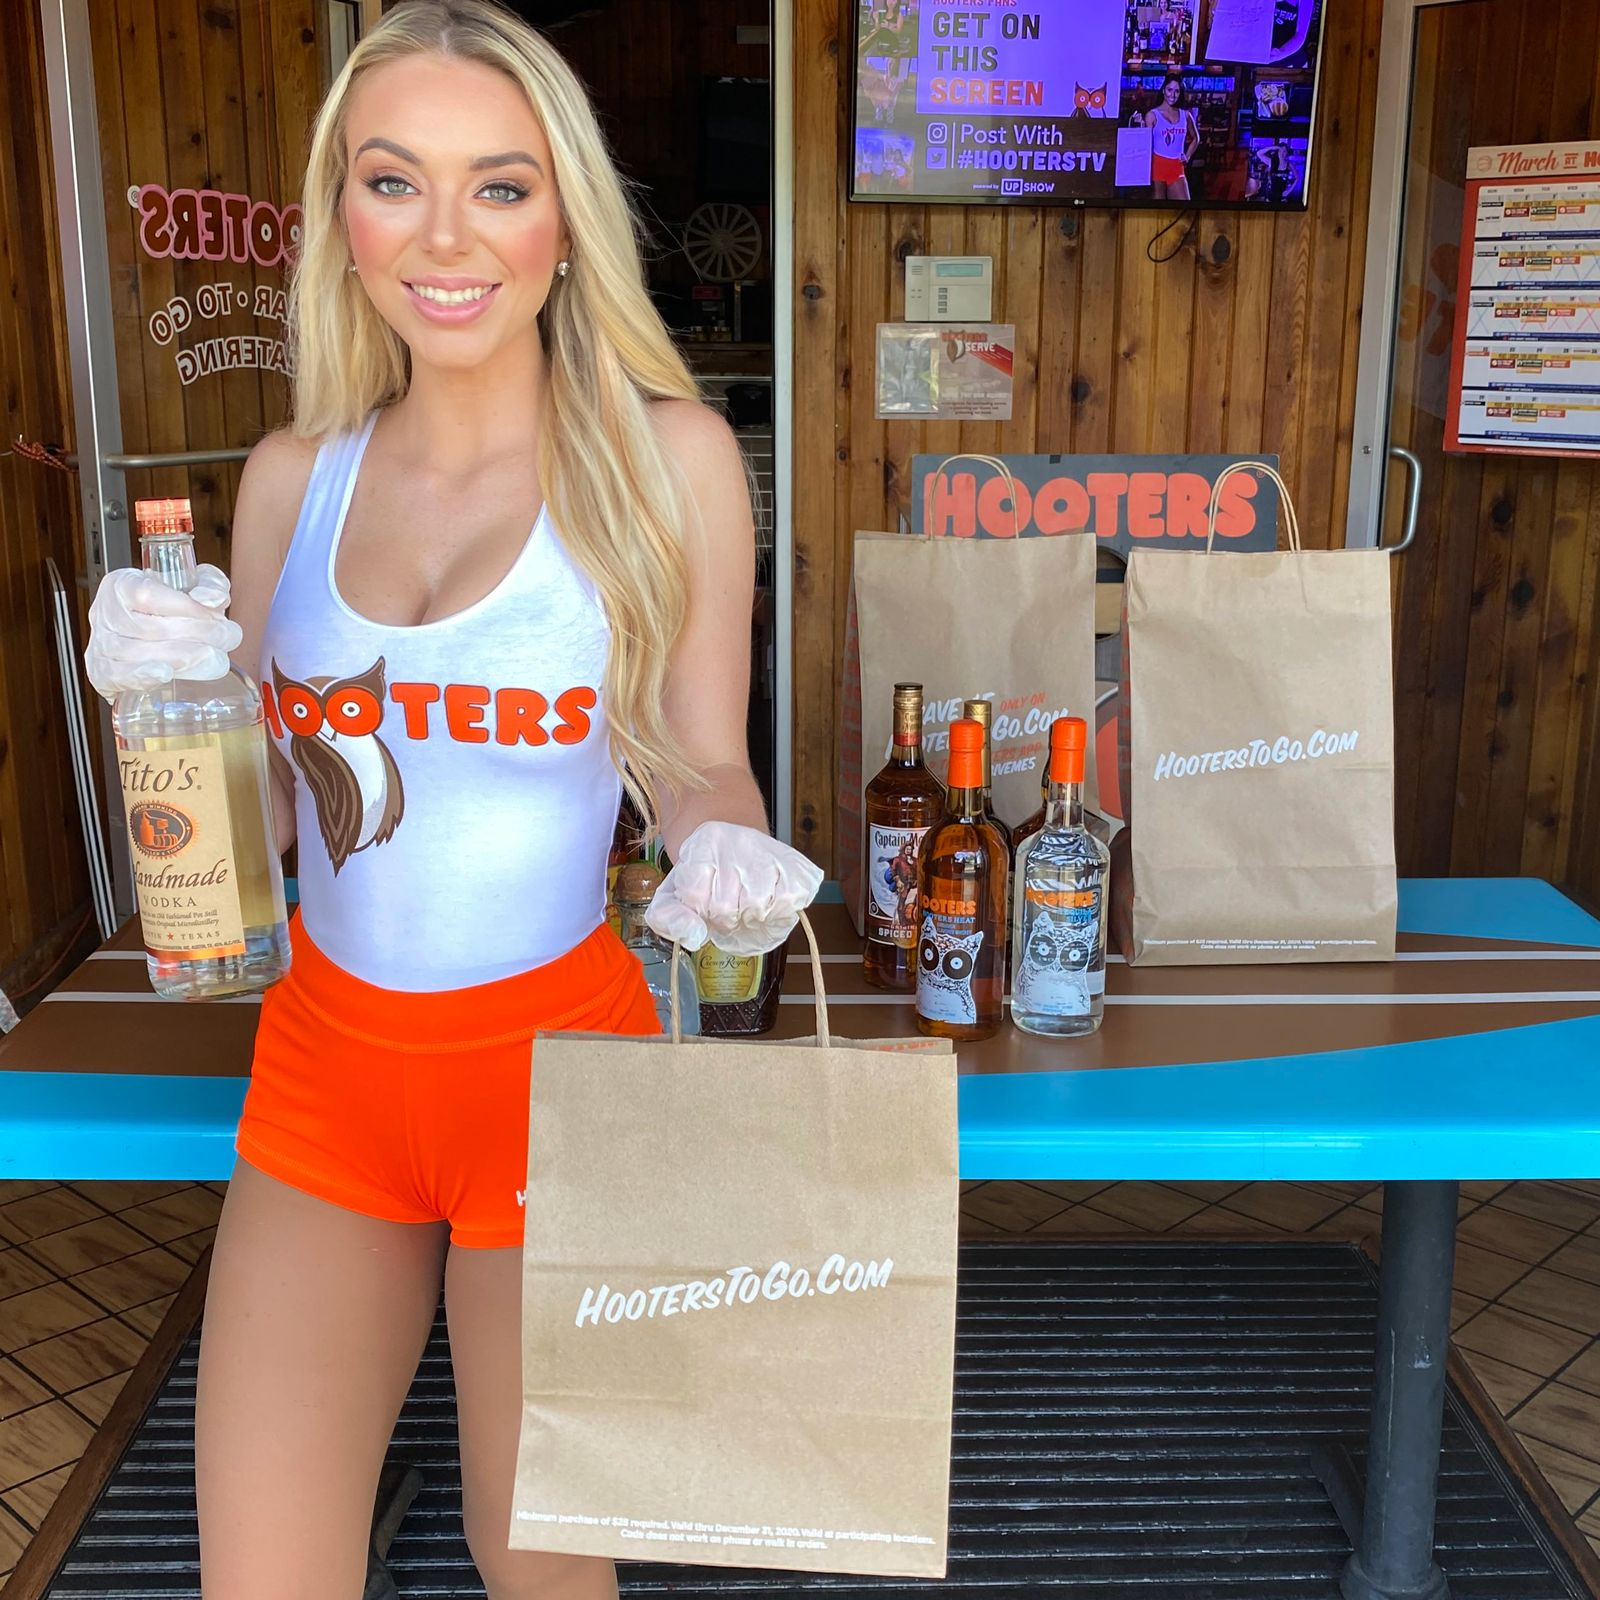 Hooters Launches Curbside Pick-Up for Full Menu Offerings Nationwide